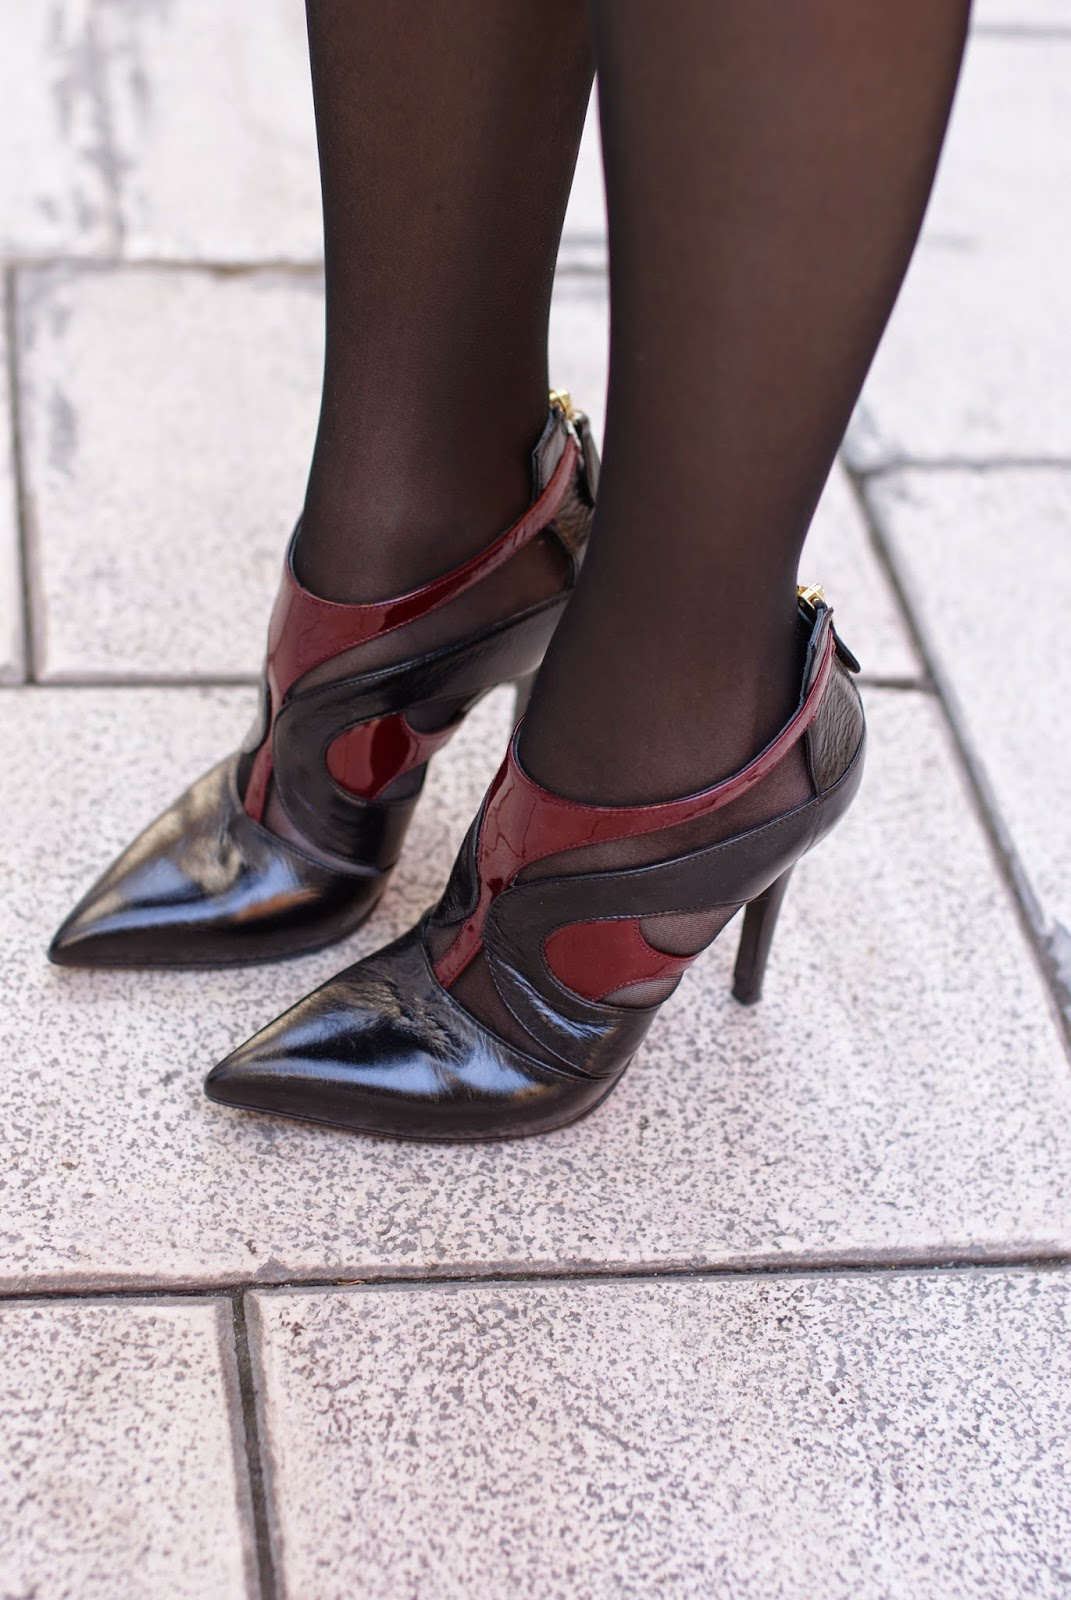 cut out stiletto heels with black sheer tights, Fashion and Cookies, fashion biogger, fashion blog, legs in black tights